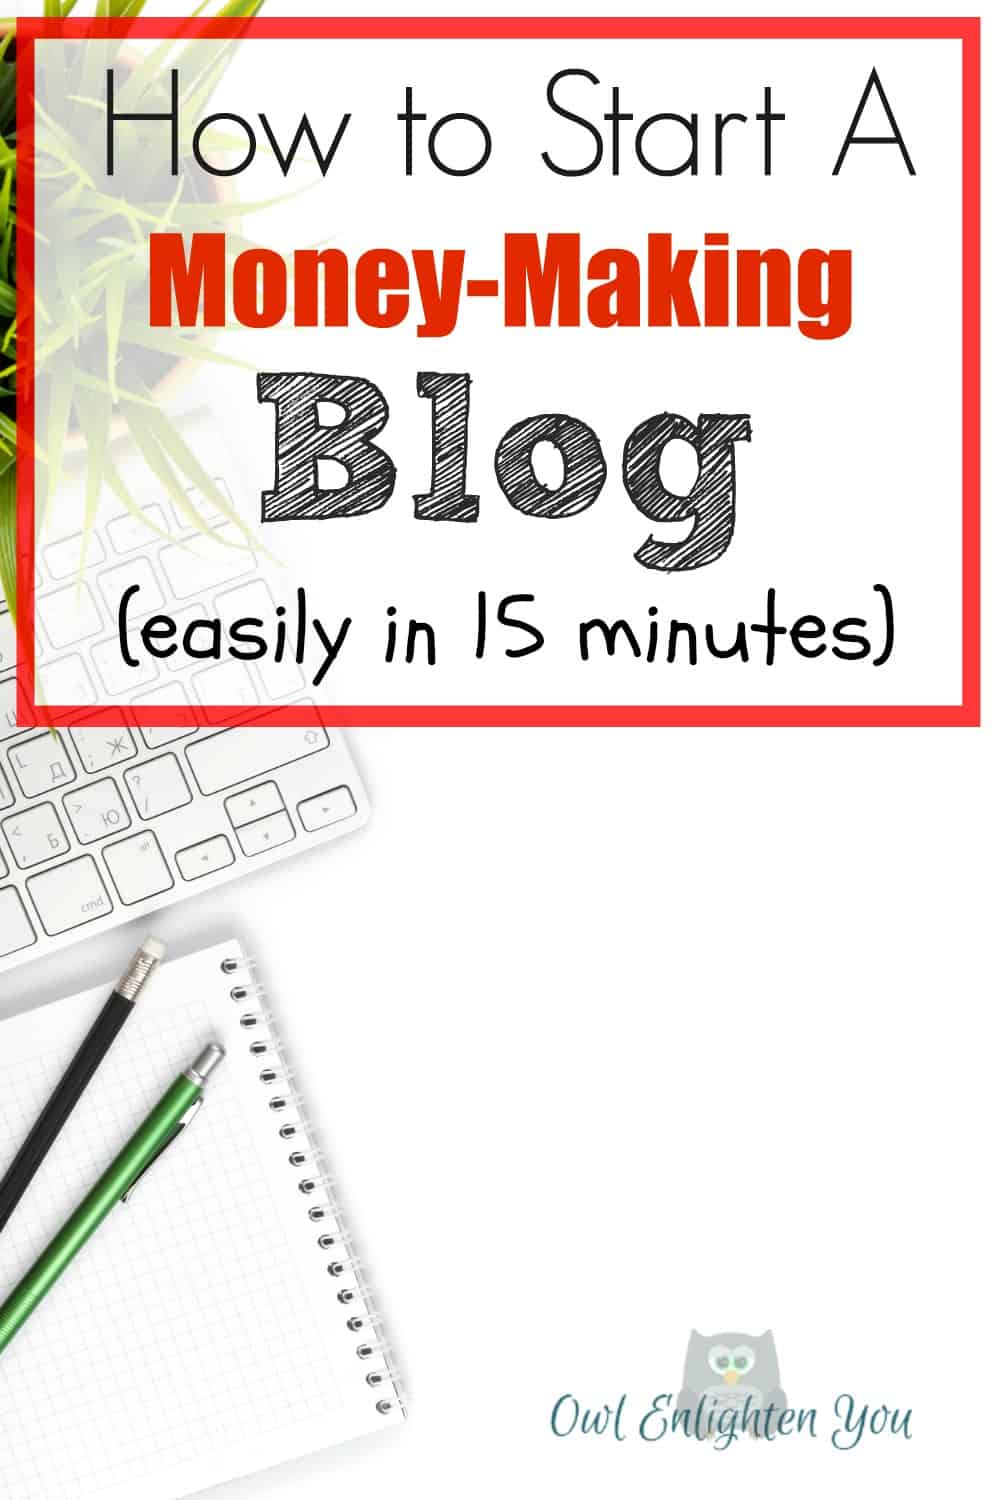 How to start a money-making blog easily in 15 minutes- Owl Enlighten You: Have you been thinking of starting a blog but you were not sure how? Now you can follow this tutorial and start a blog easily in 15 minutes.